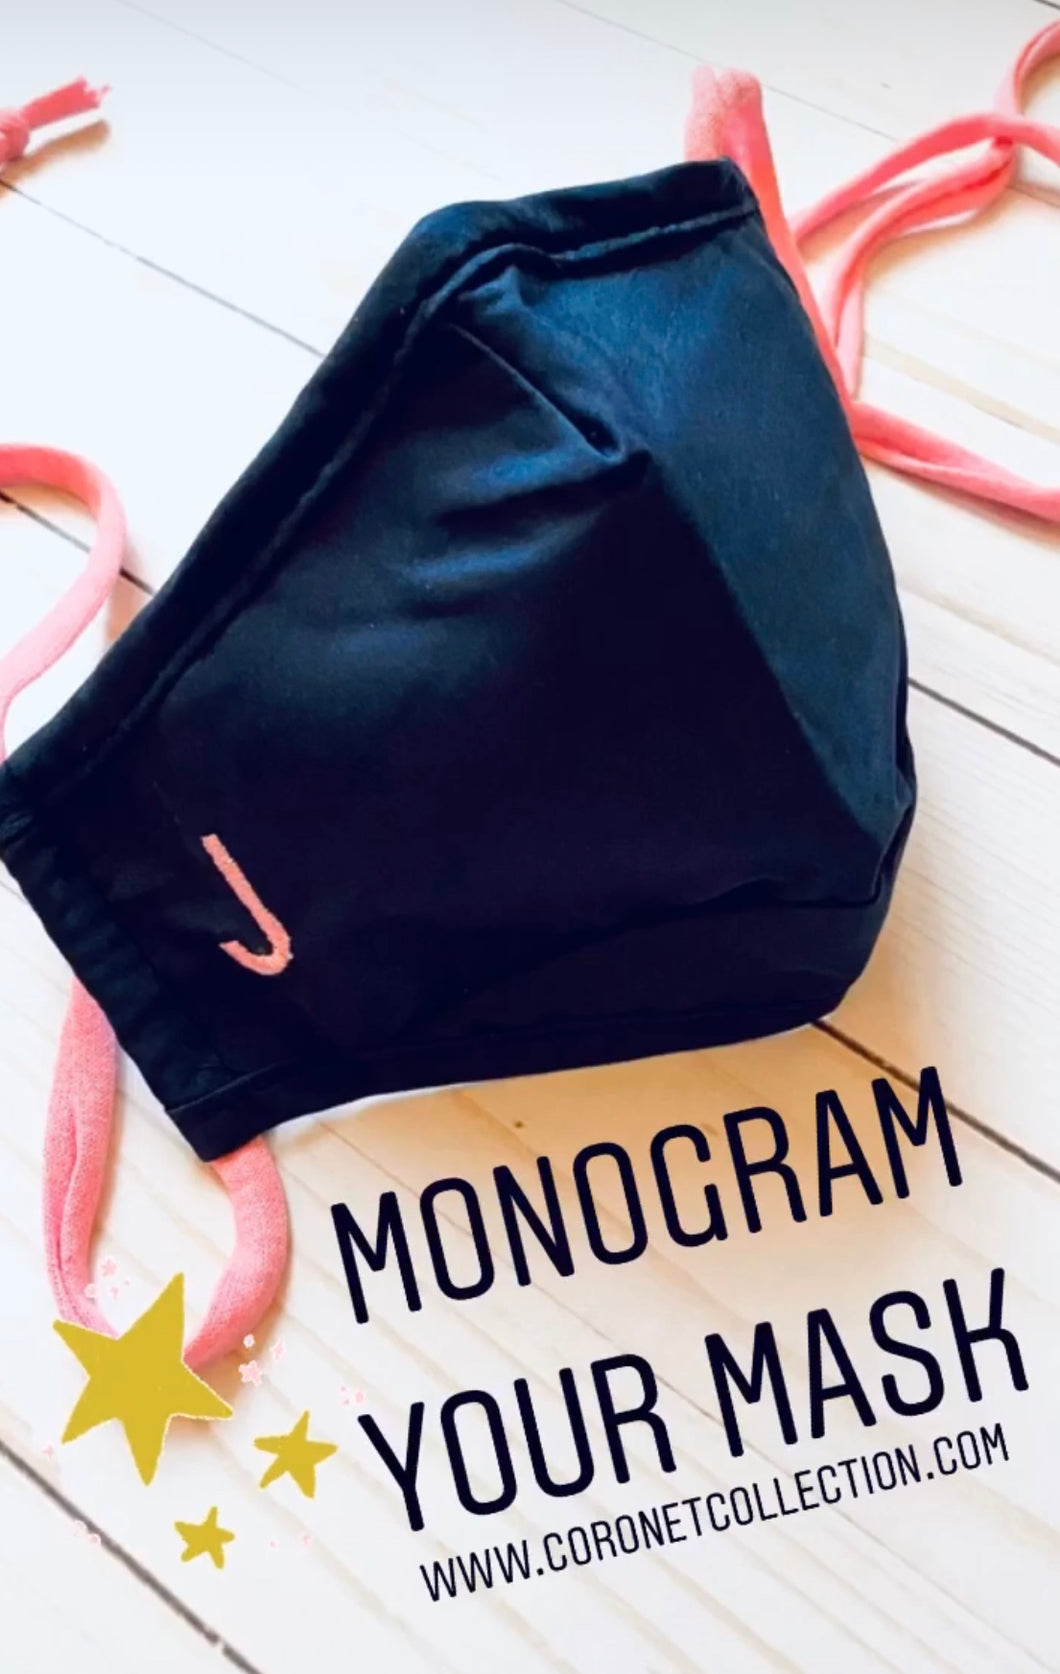 Monogram Your Mask!